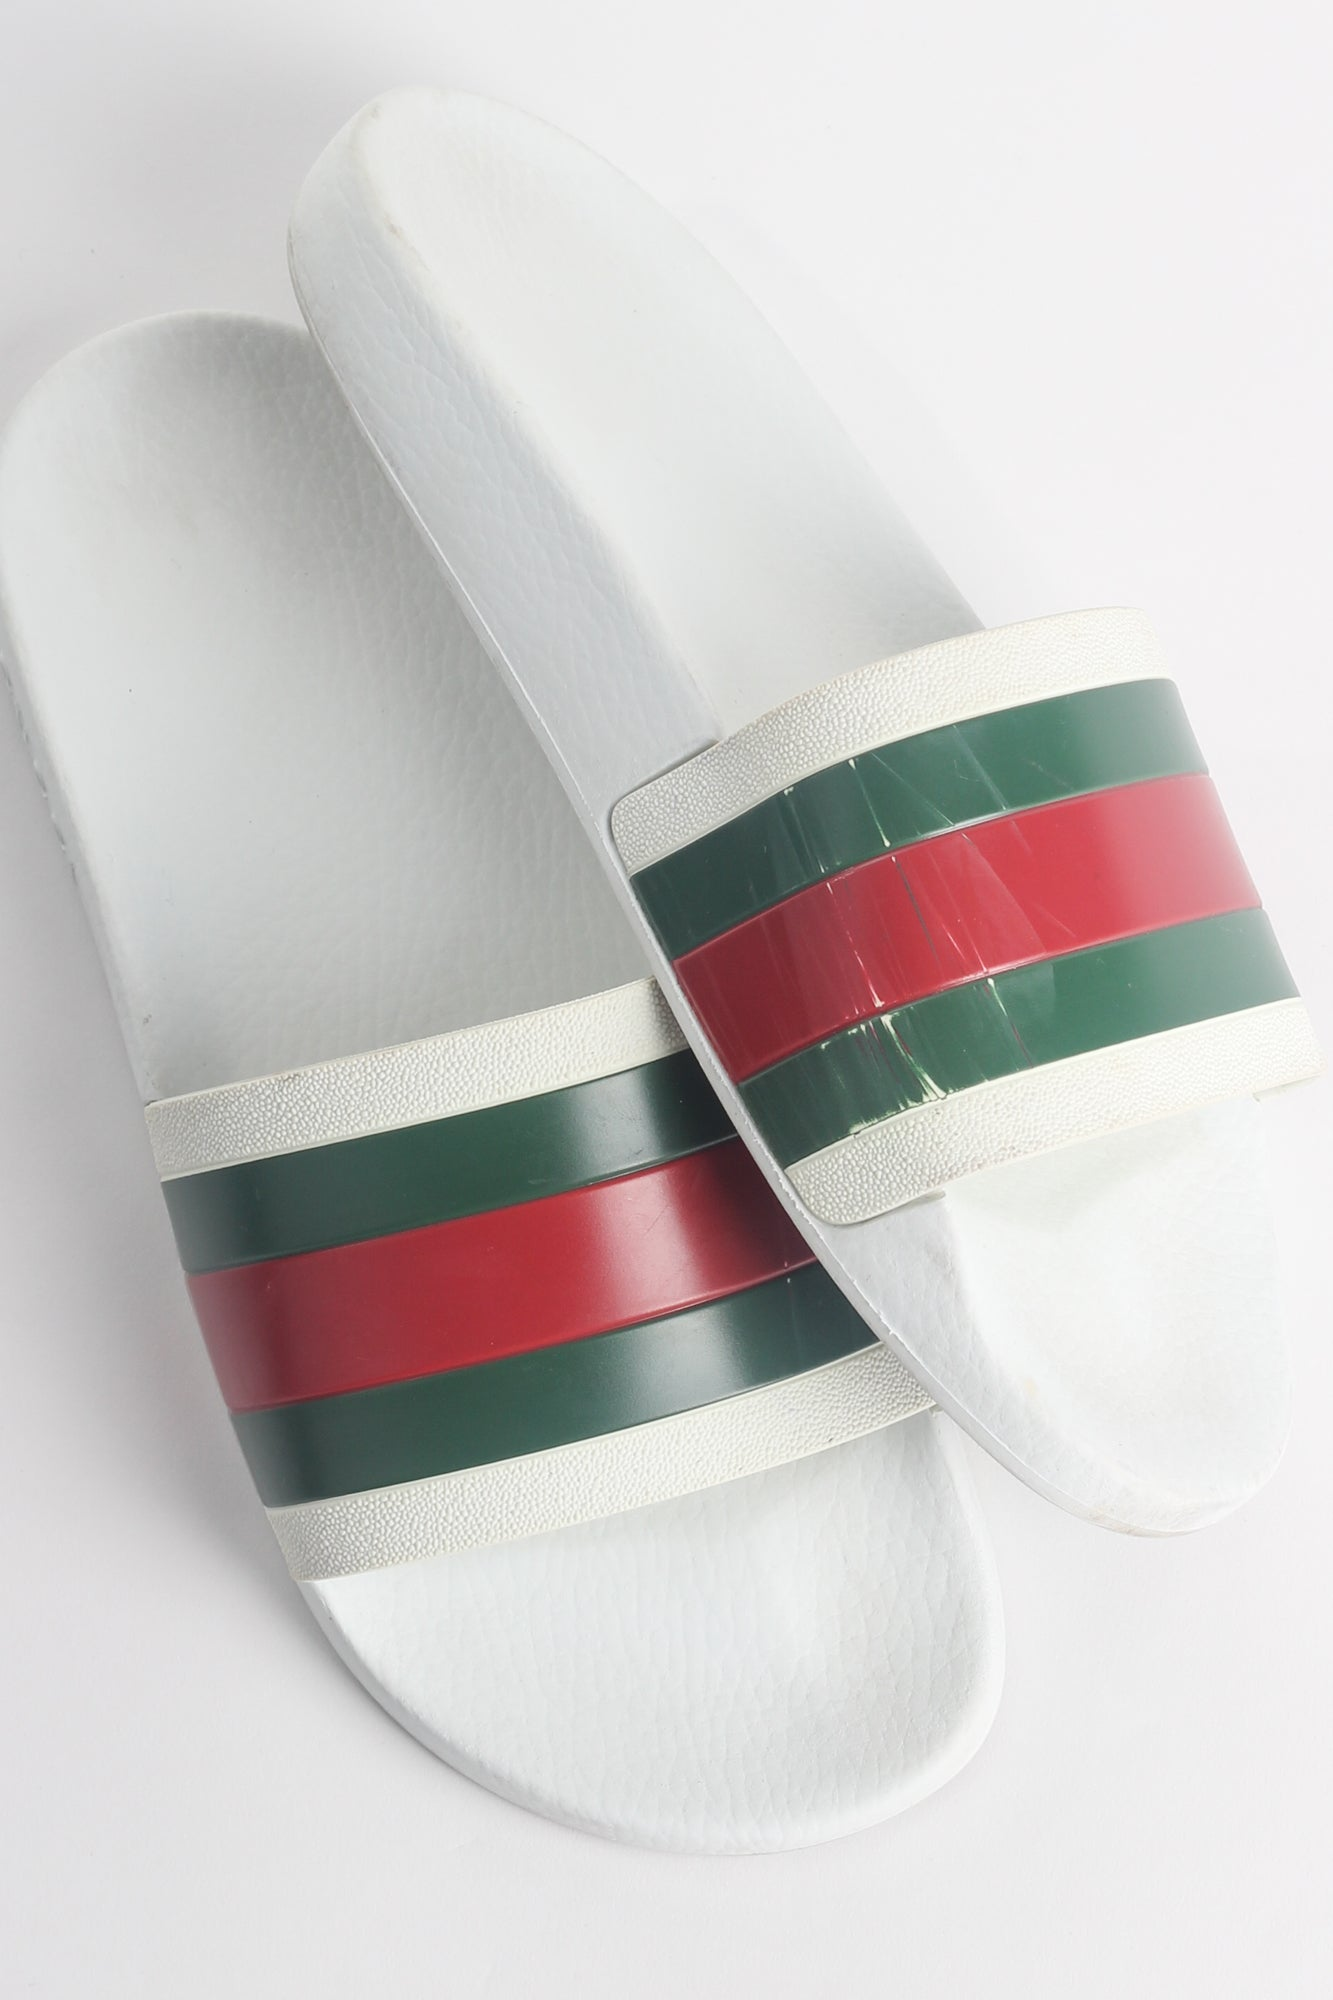 GUCCI PURSUIT '72 RUBBER SLIP-ON SLIDES IN WHITE